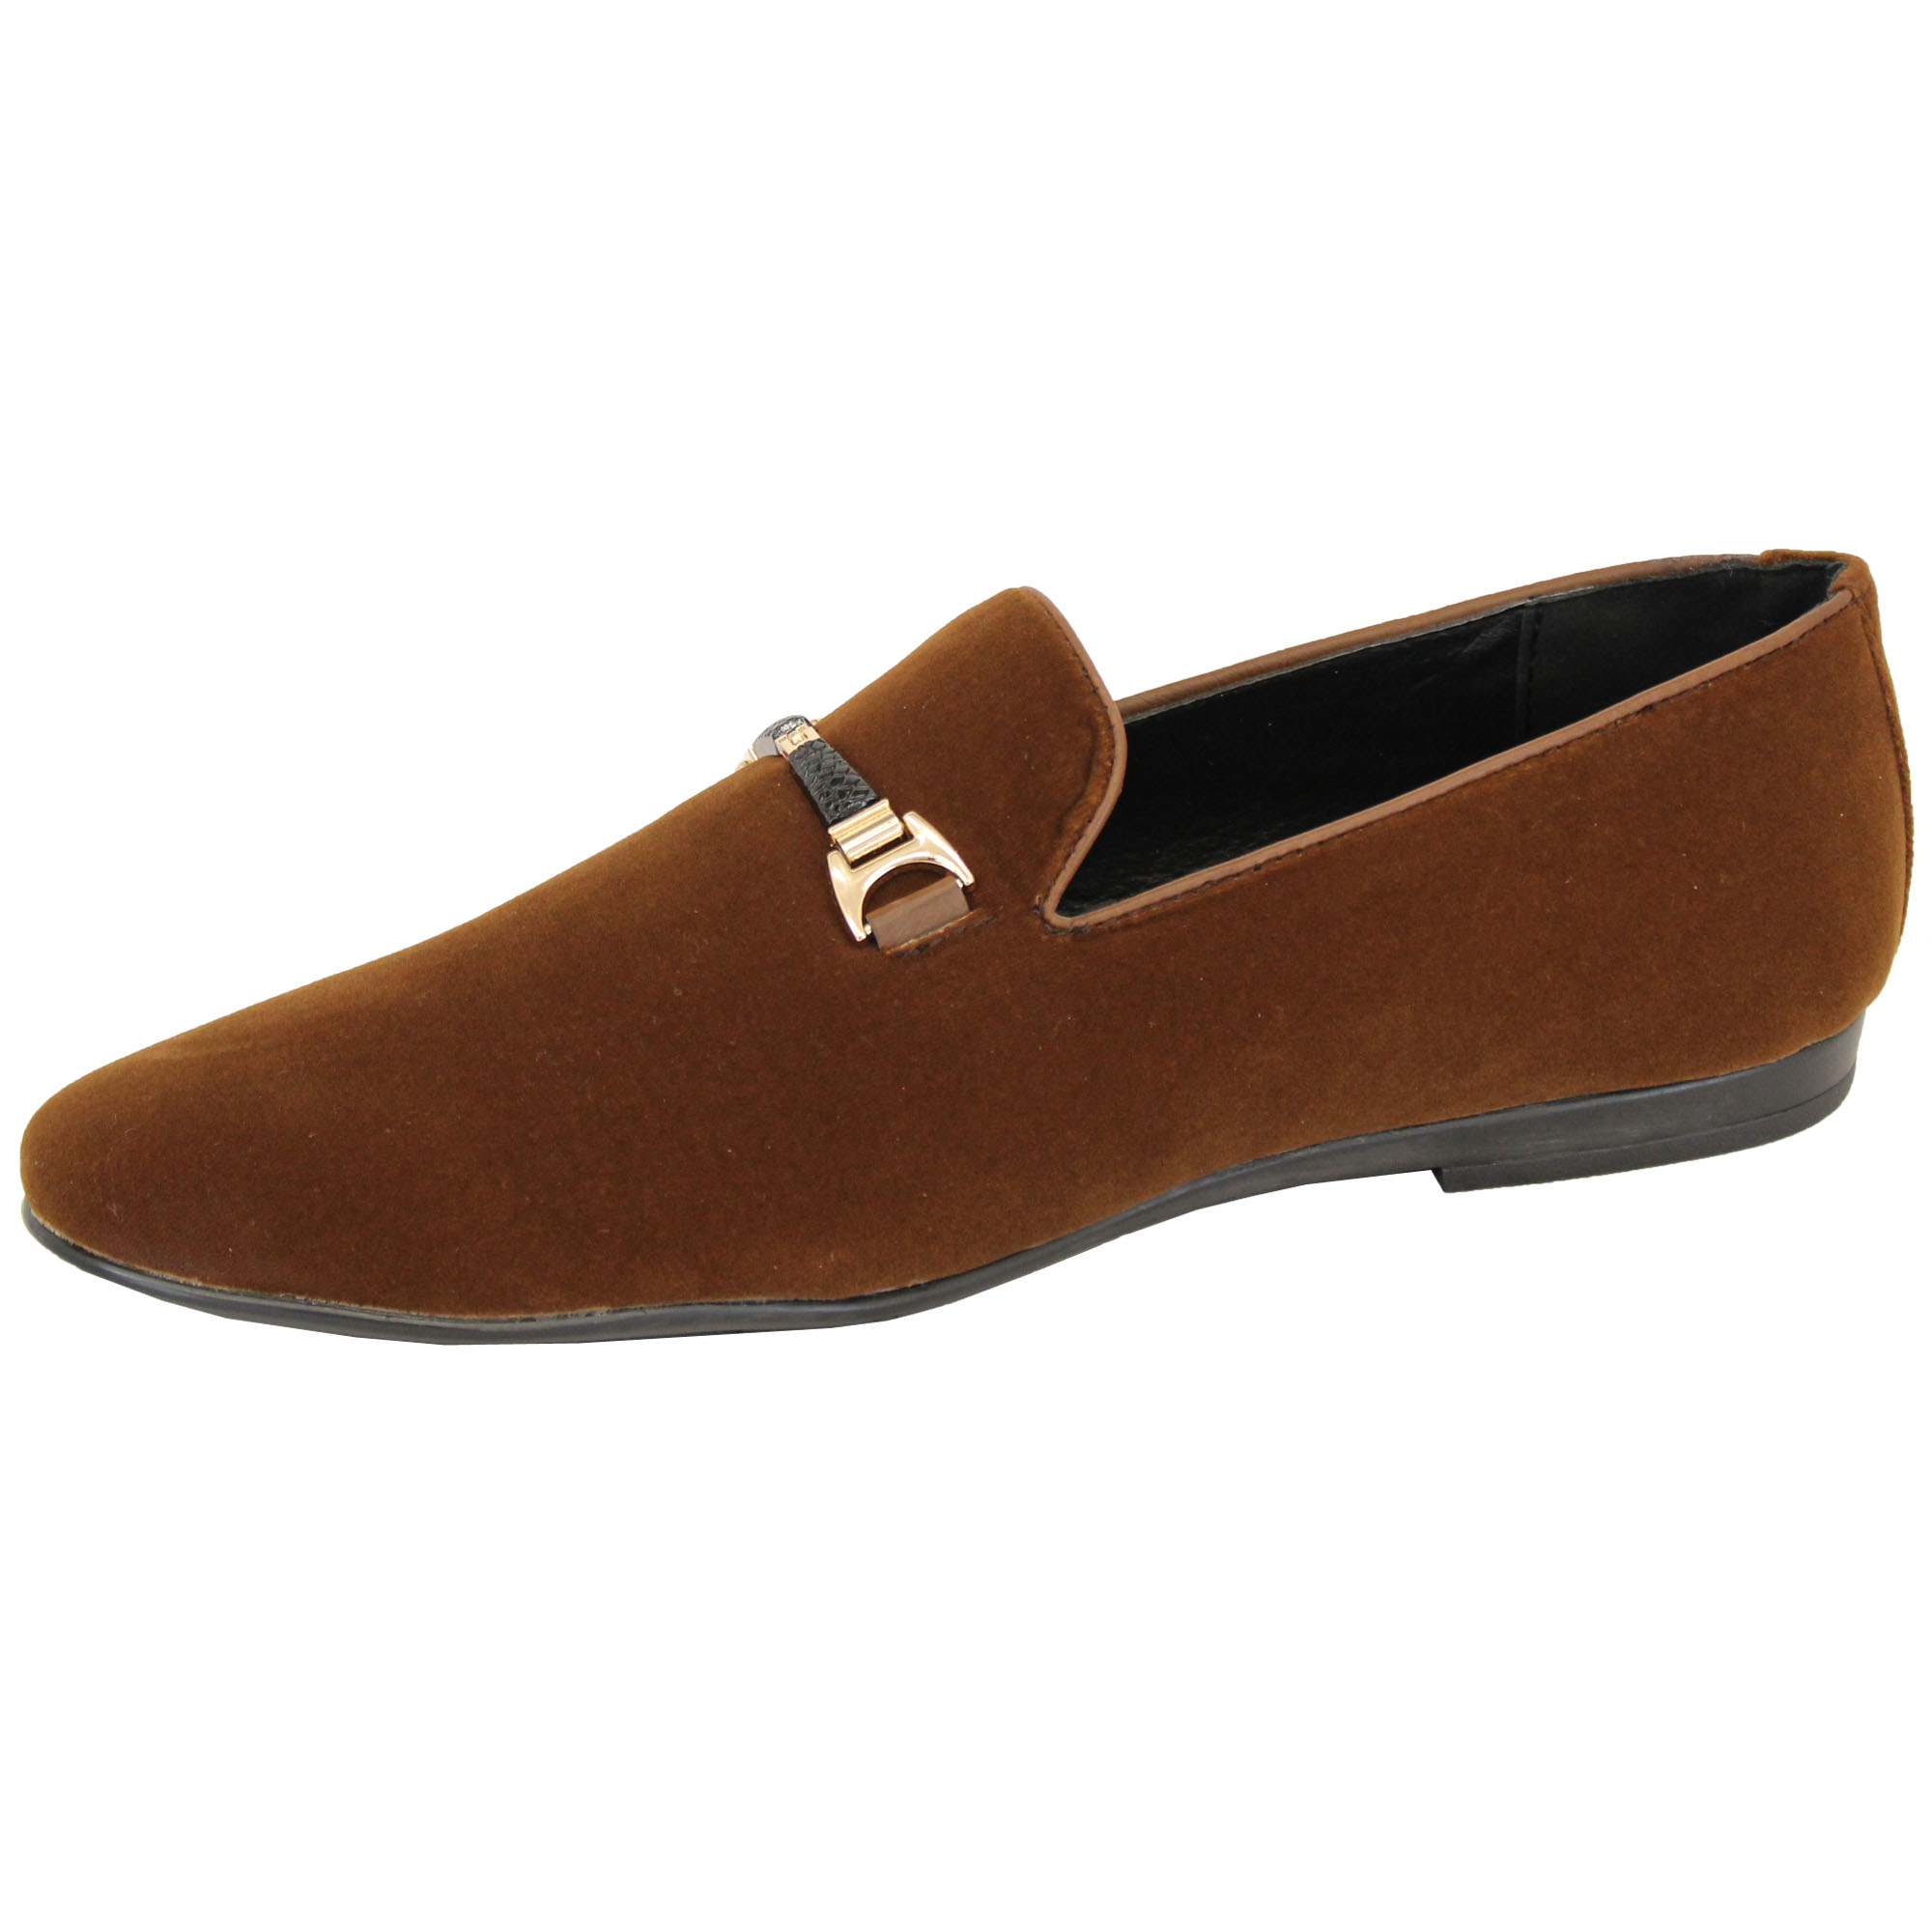 Mens-Slip-On-Italian-Shoes-Designer-Loafers-Suede-Look-Moccasin-Style-Fashion thumbnail 11